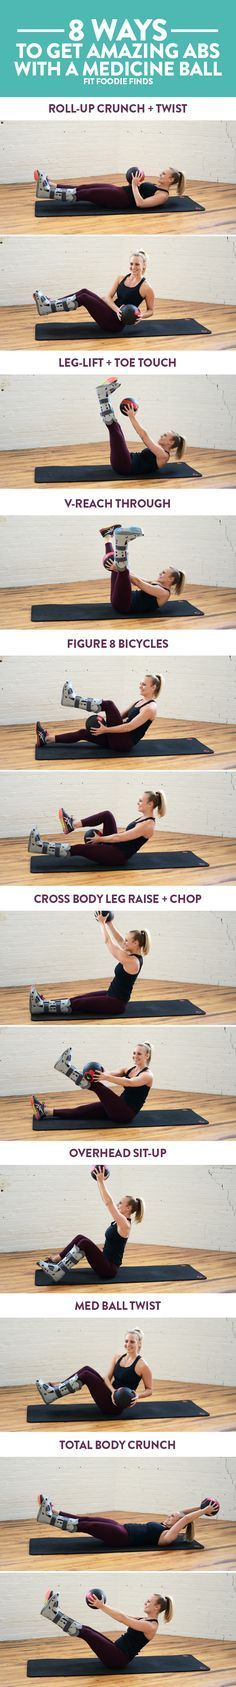 Here's 8 Ways to Get Amazing Abs with a Medicine ball. Plus- a mini circuit that you can do to finish off a workout!